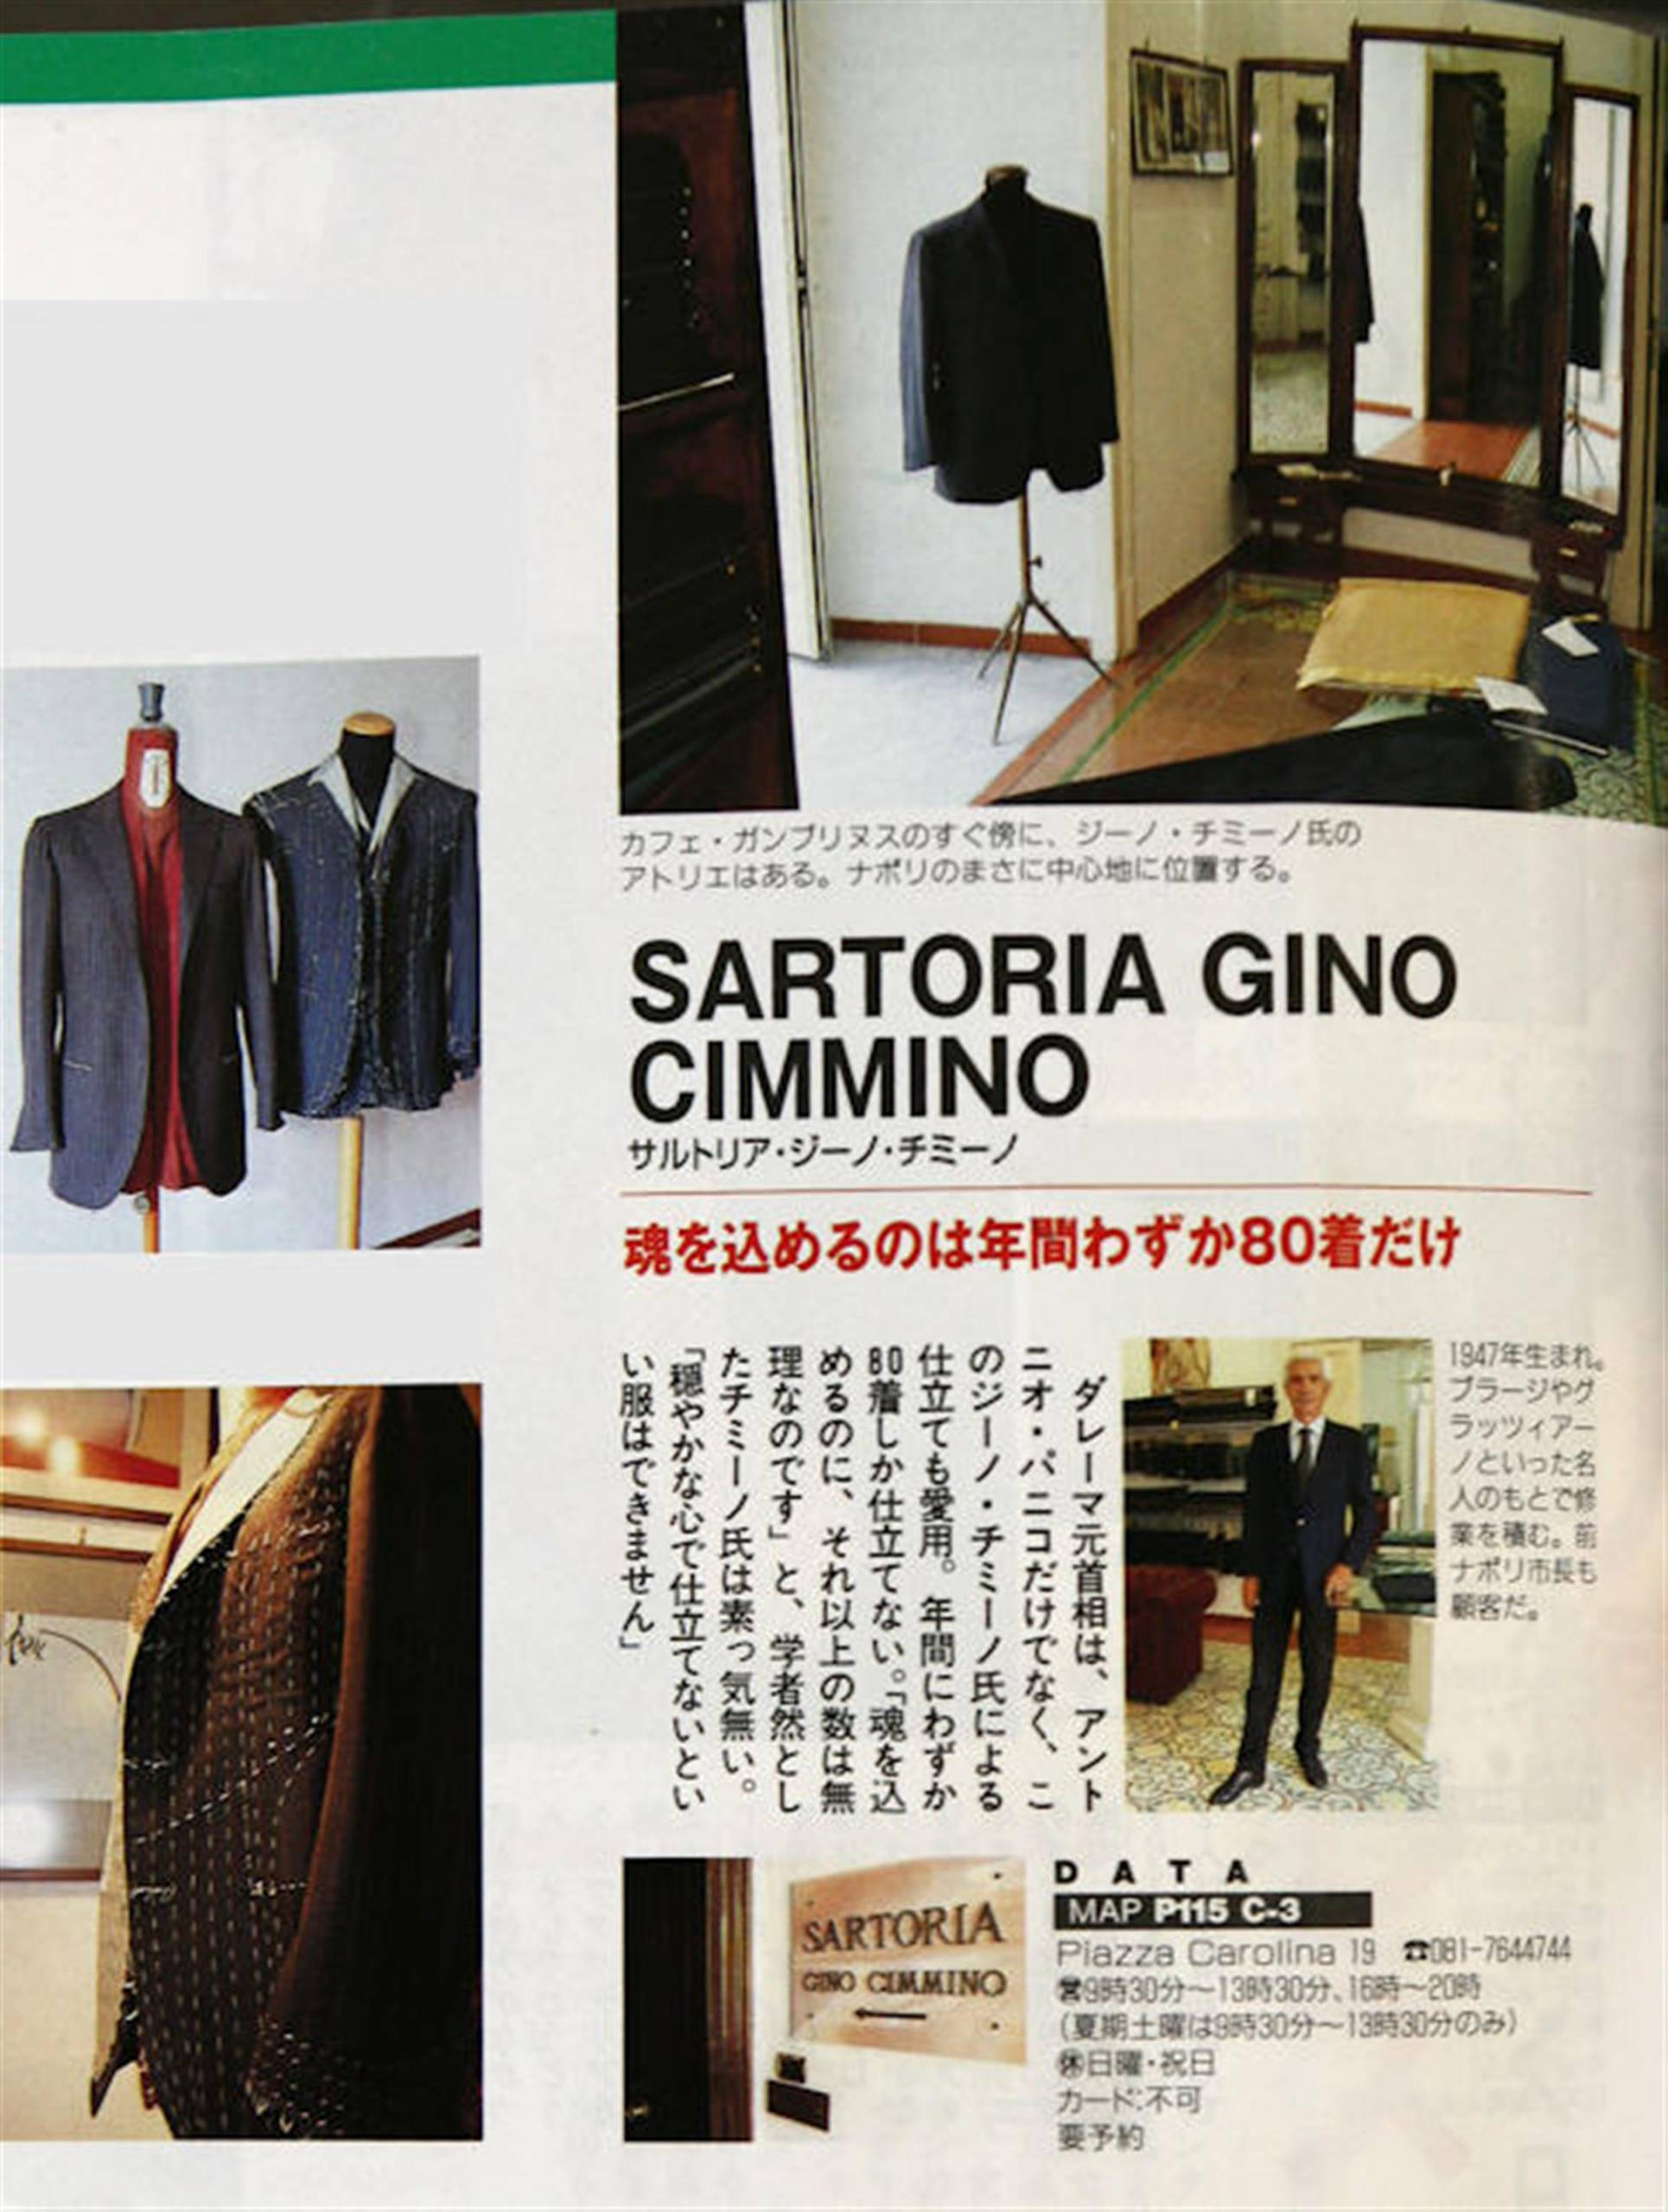 Japan Press – Sartoria Gino Cimmino